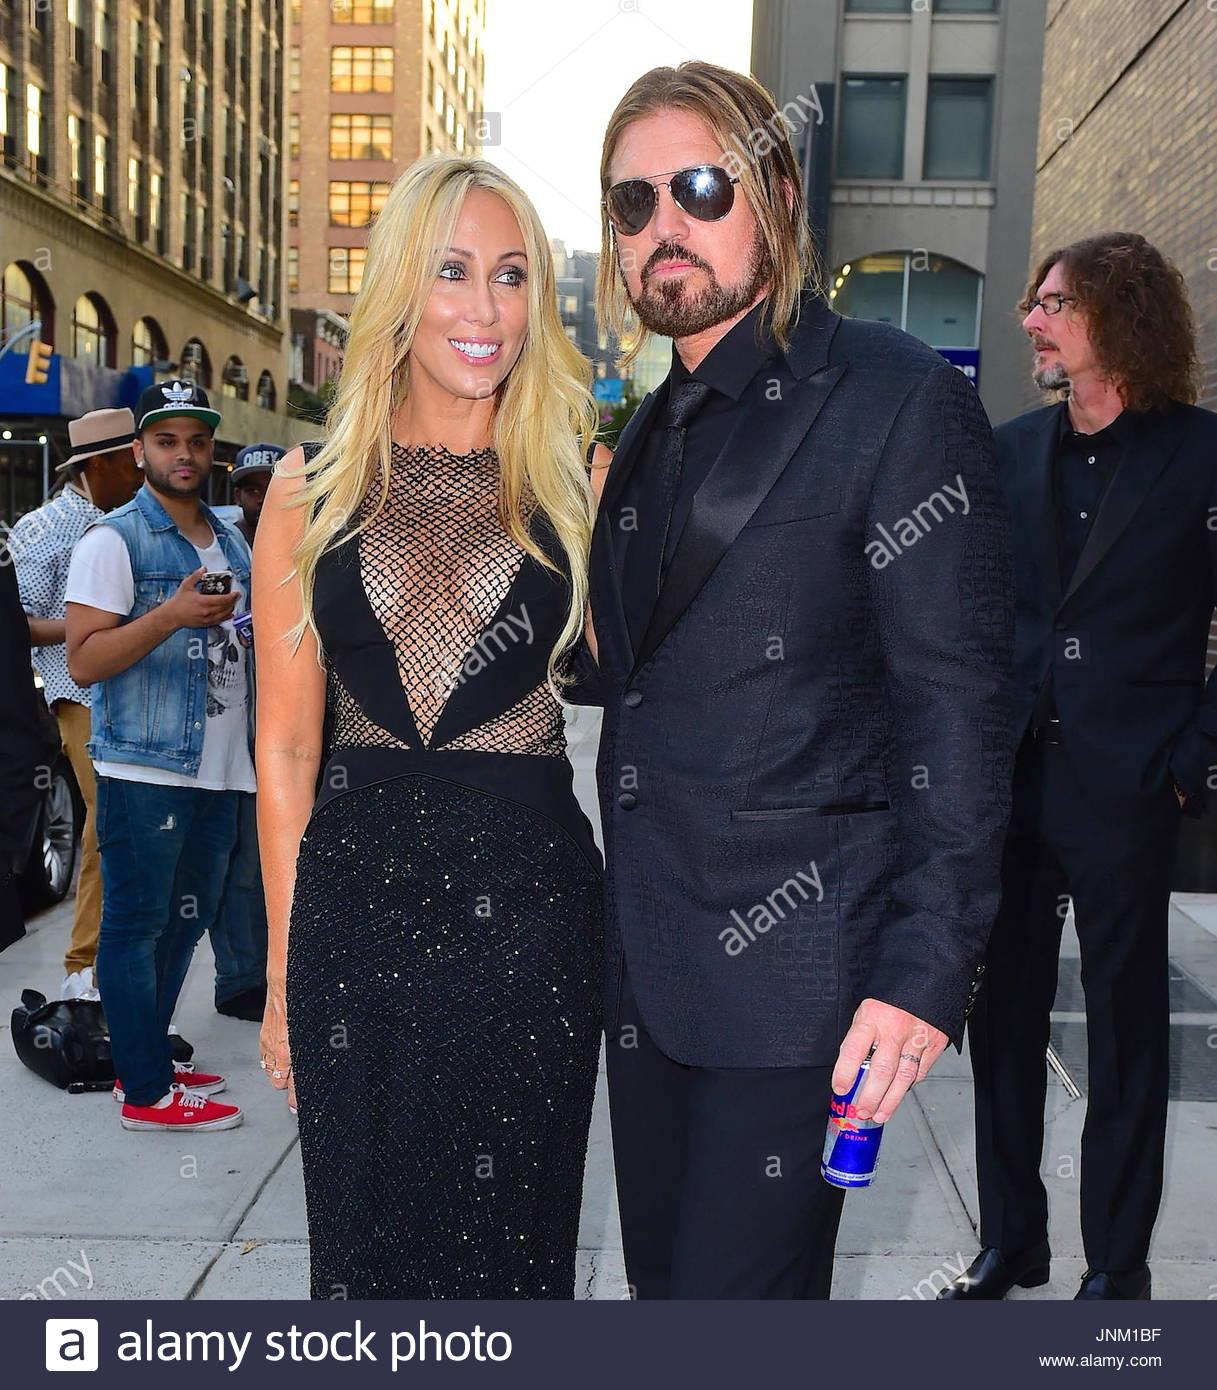 selfie billy ray cyrus and pew Miley cyrus posted a pre-vmas naked selfie reactions to miley cyrus's nude pre-vmas selfie are really surprising (photo) — billy ray cyrus.